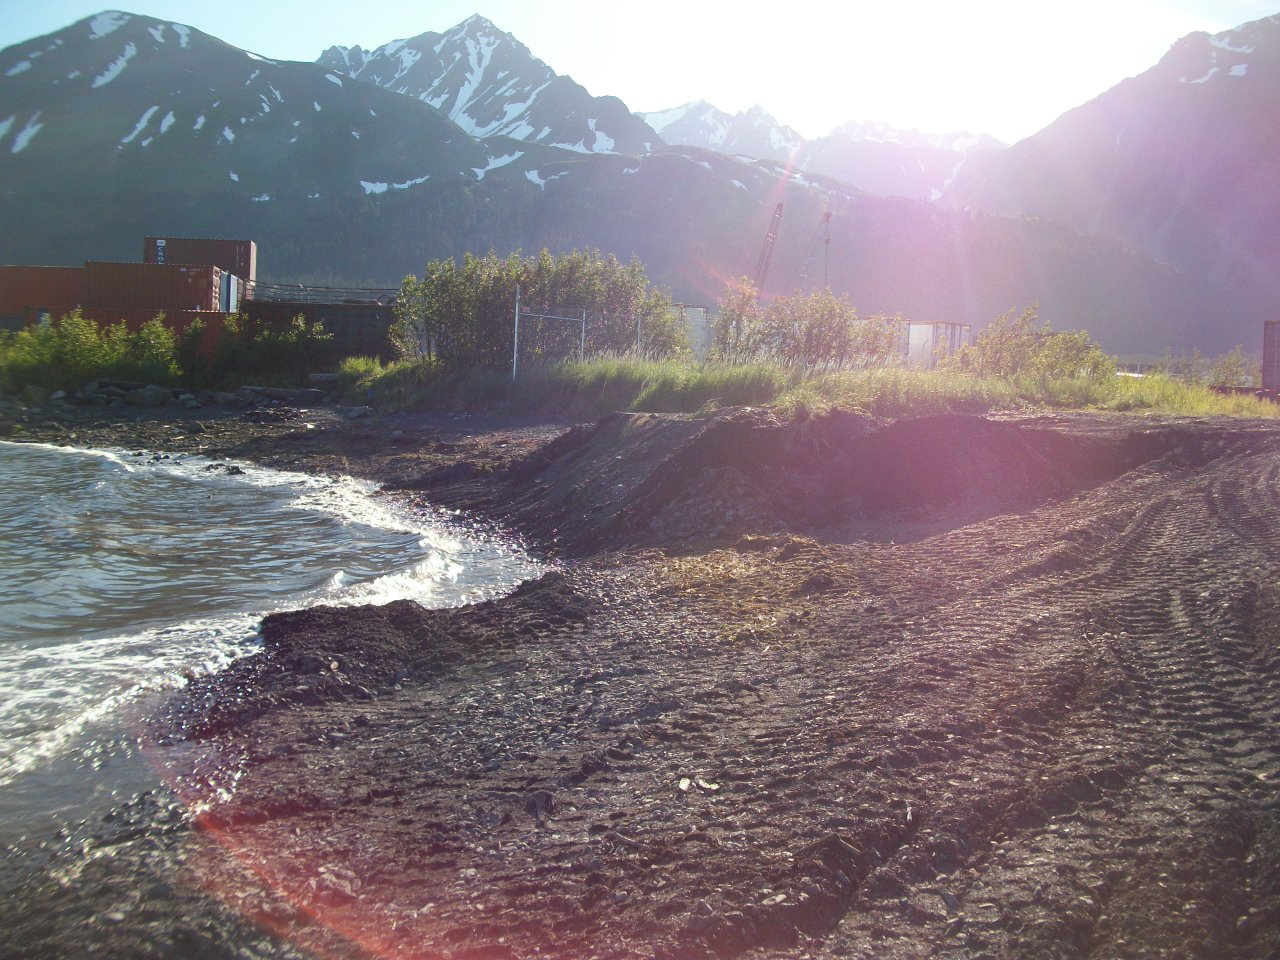 View from one of TAIT's projects in Alaska